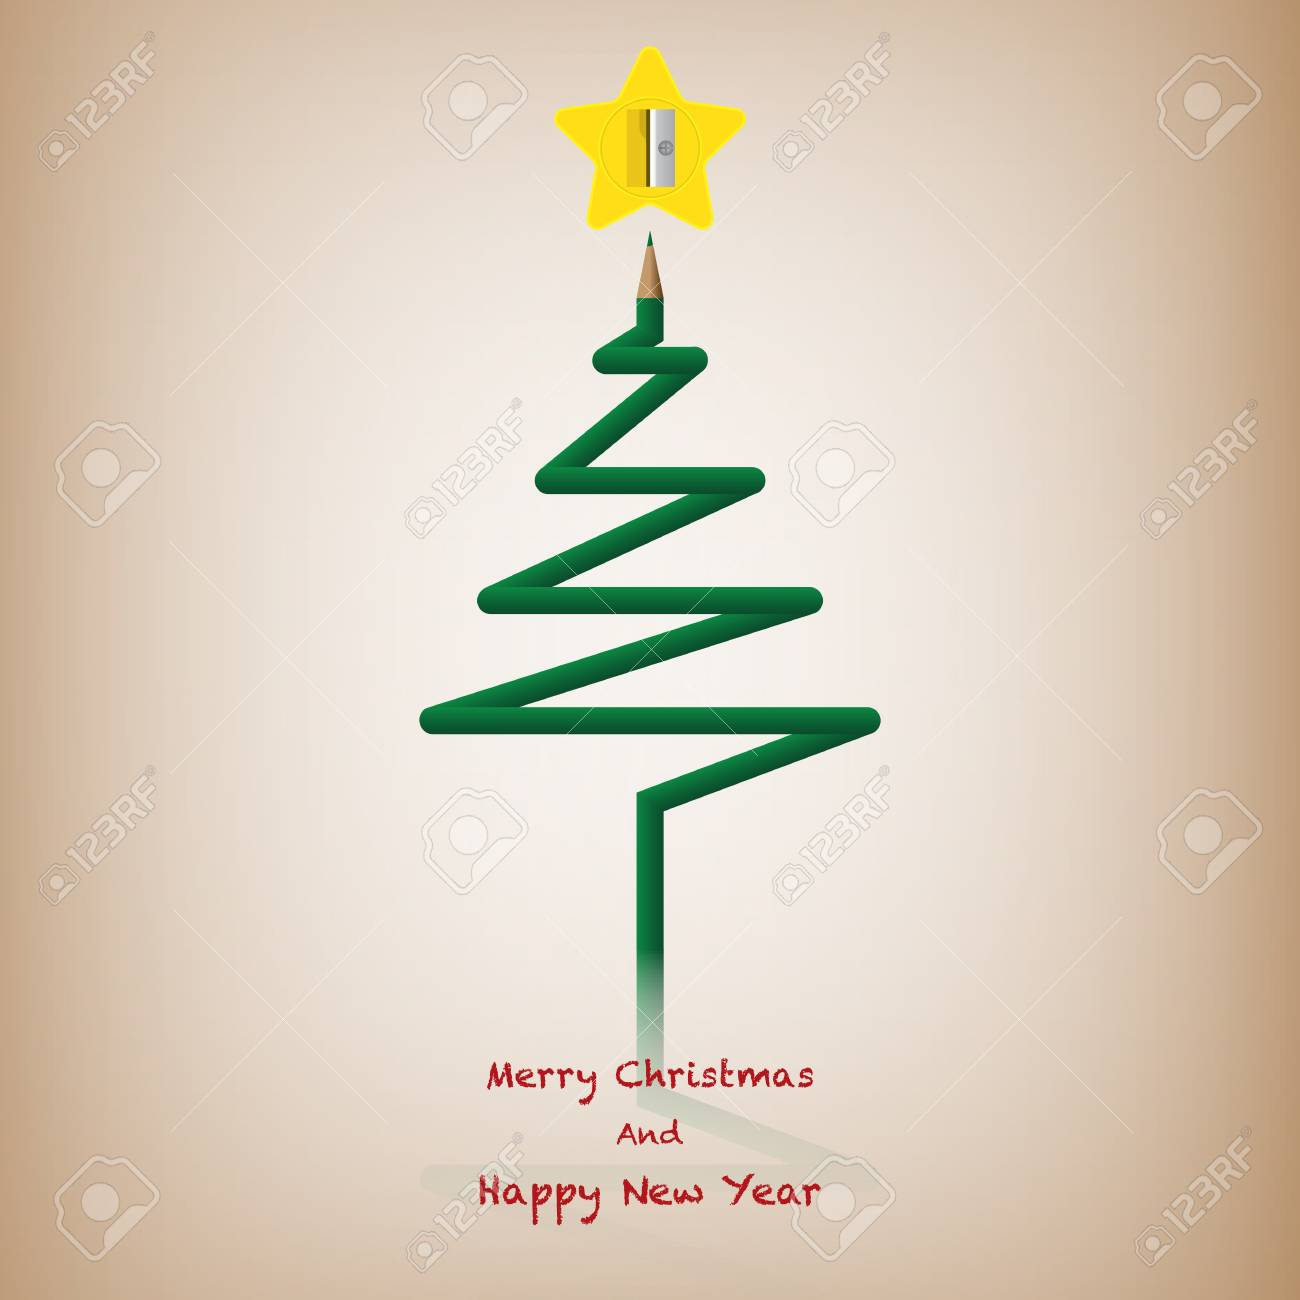 Pencil Christmas Tree.Color Pencil Christmas Tree Merry Christmas And Happy New Year